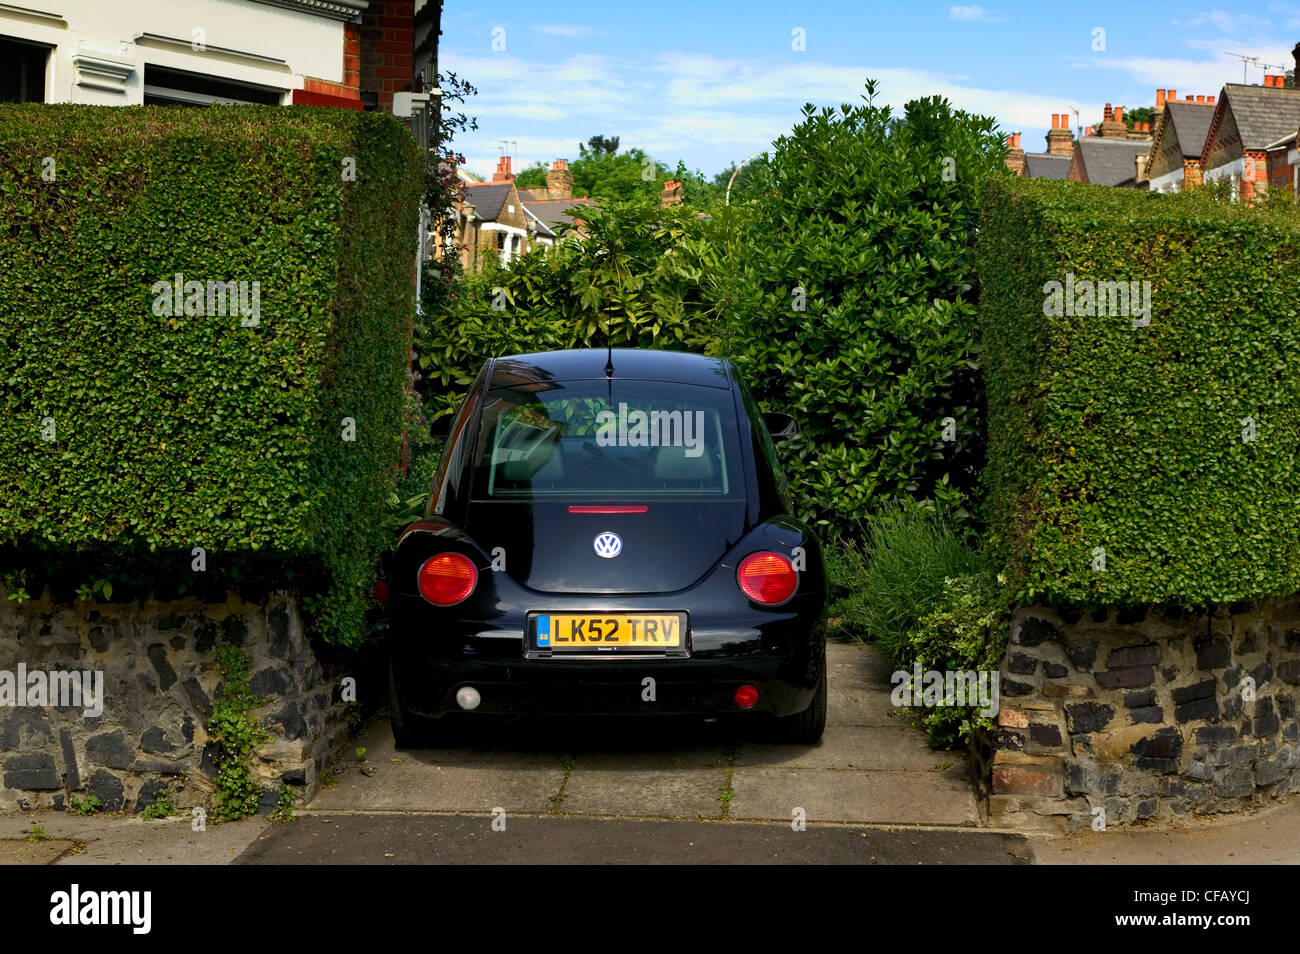 Car parked behind hedges on London suburban street. - Stock Image